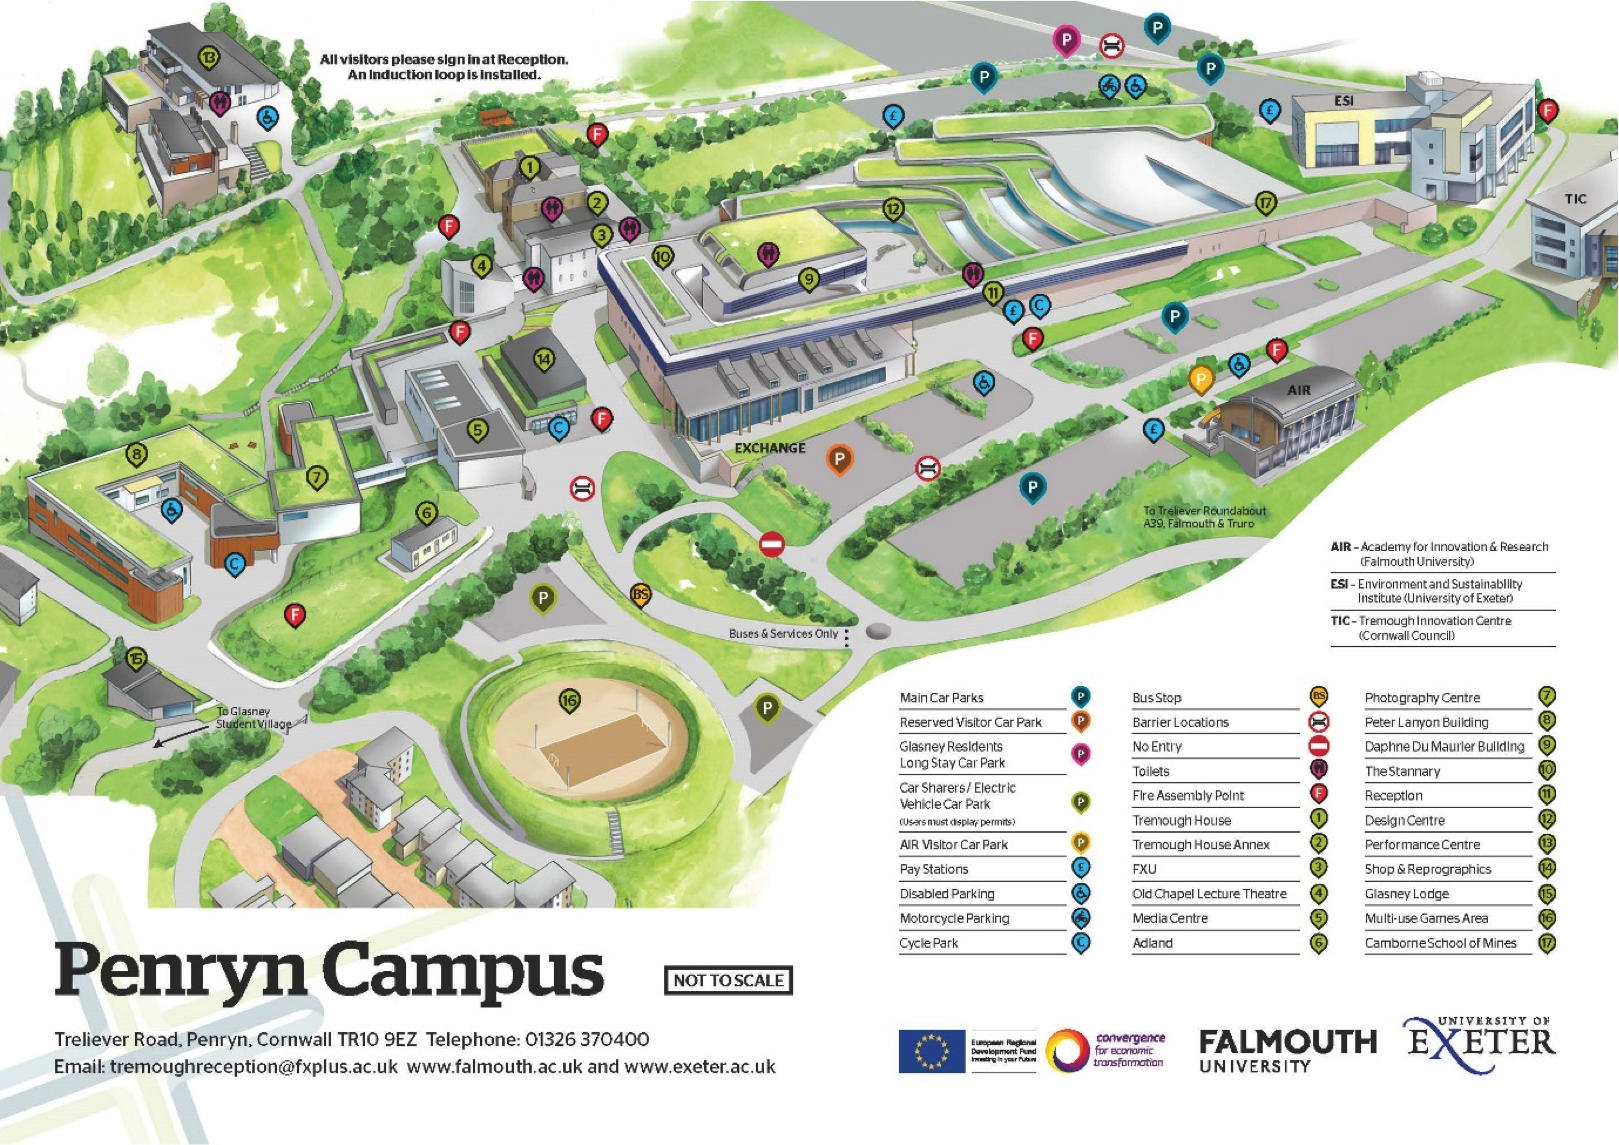 Phillips Exeter Academy Campus Map.Exeter University Campus Map Park Ideas